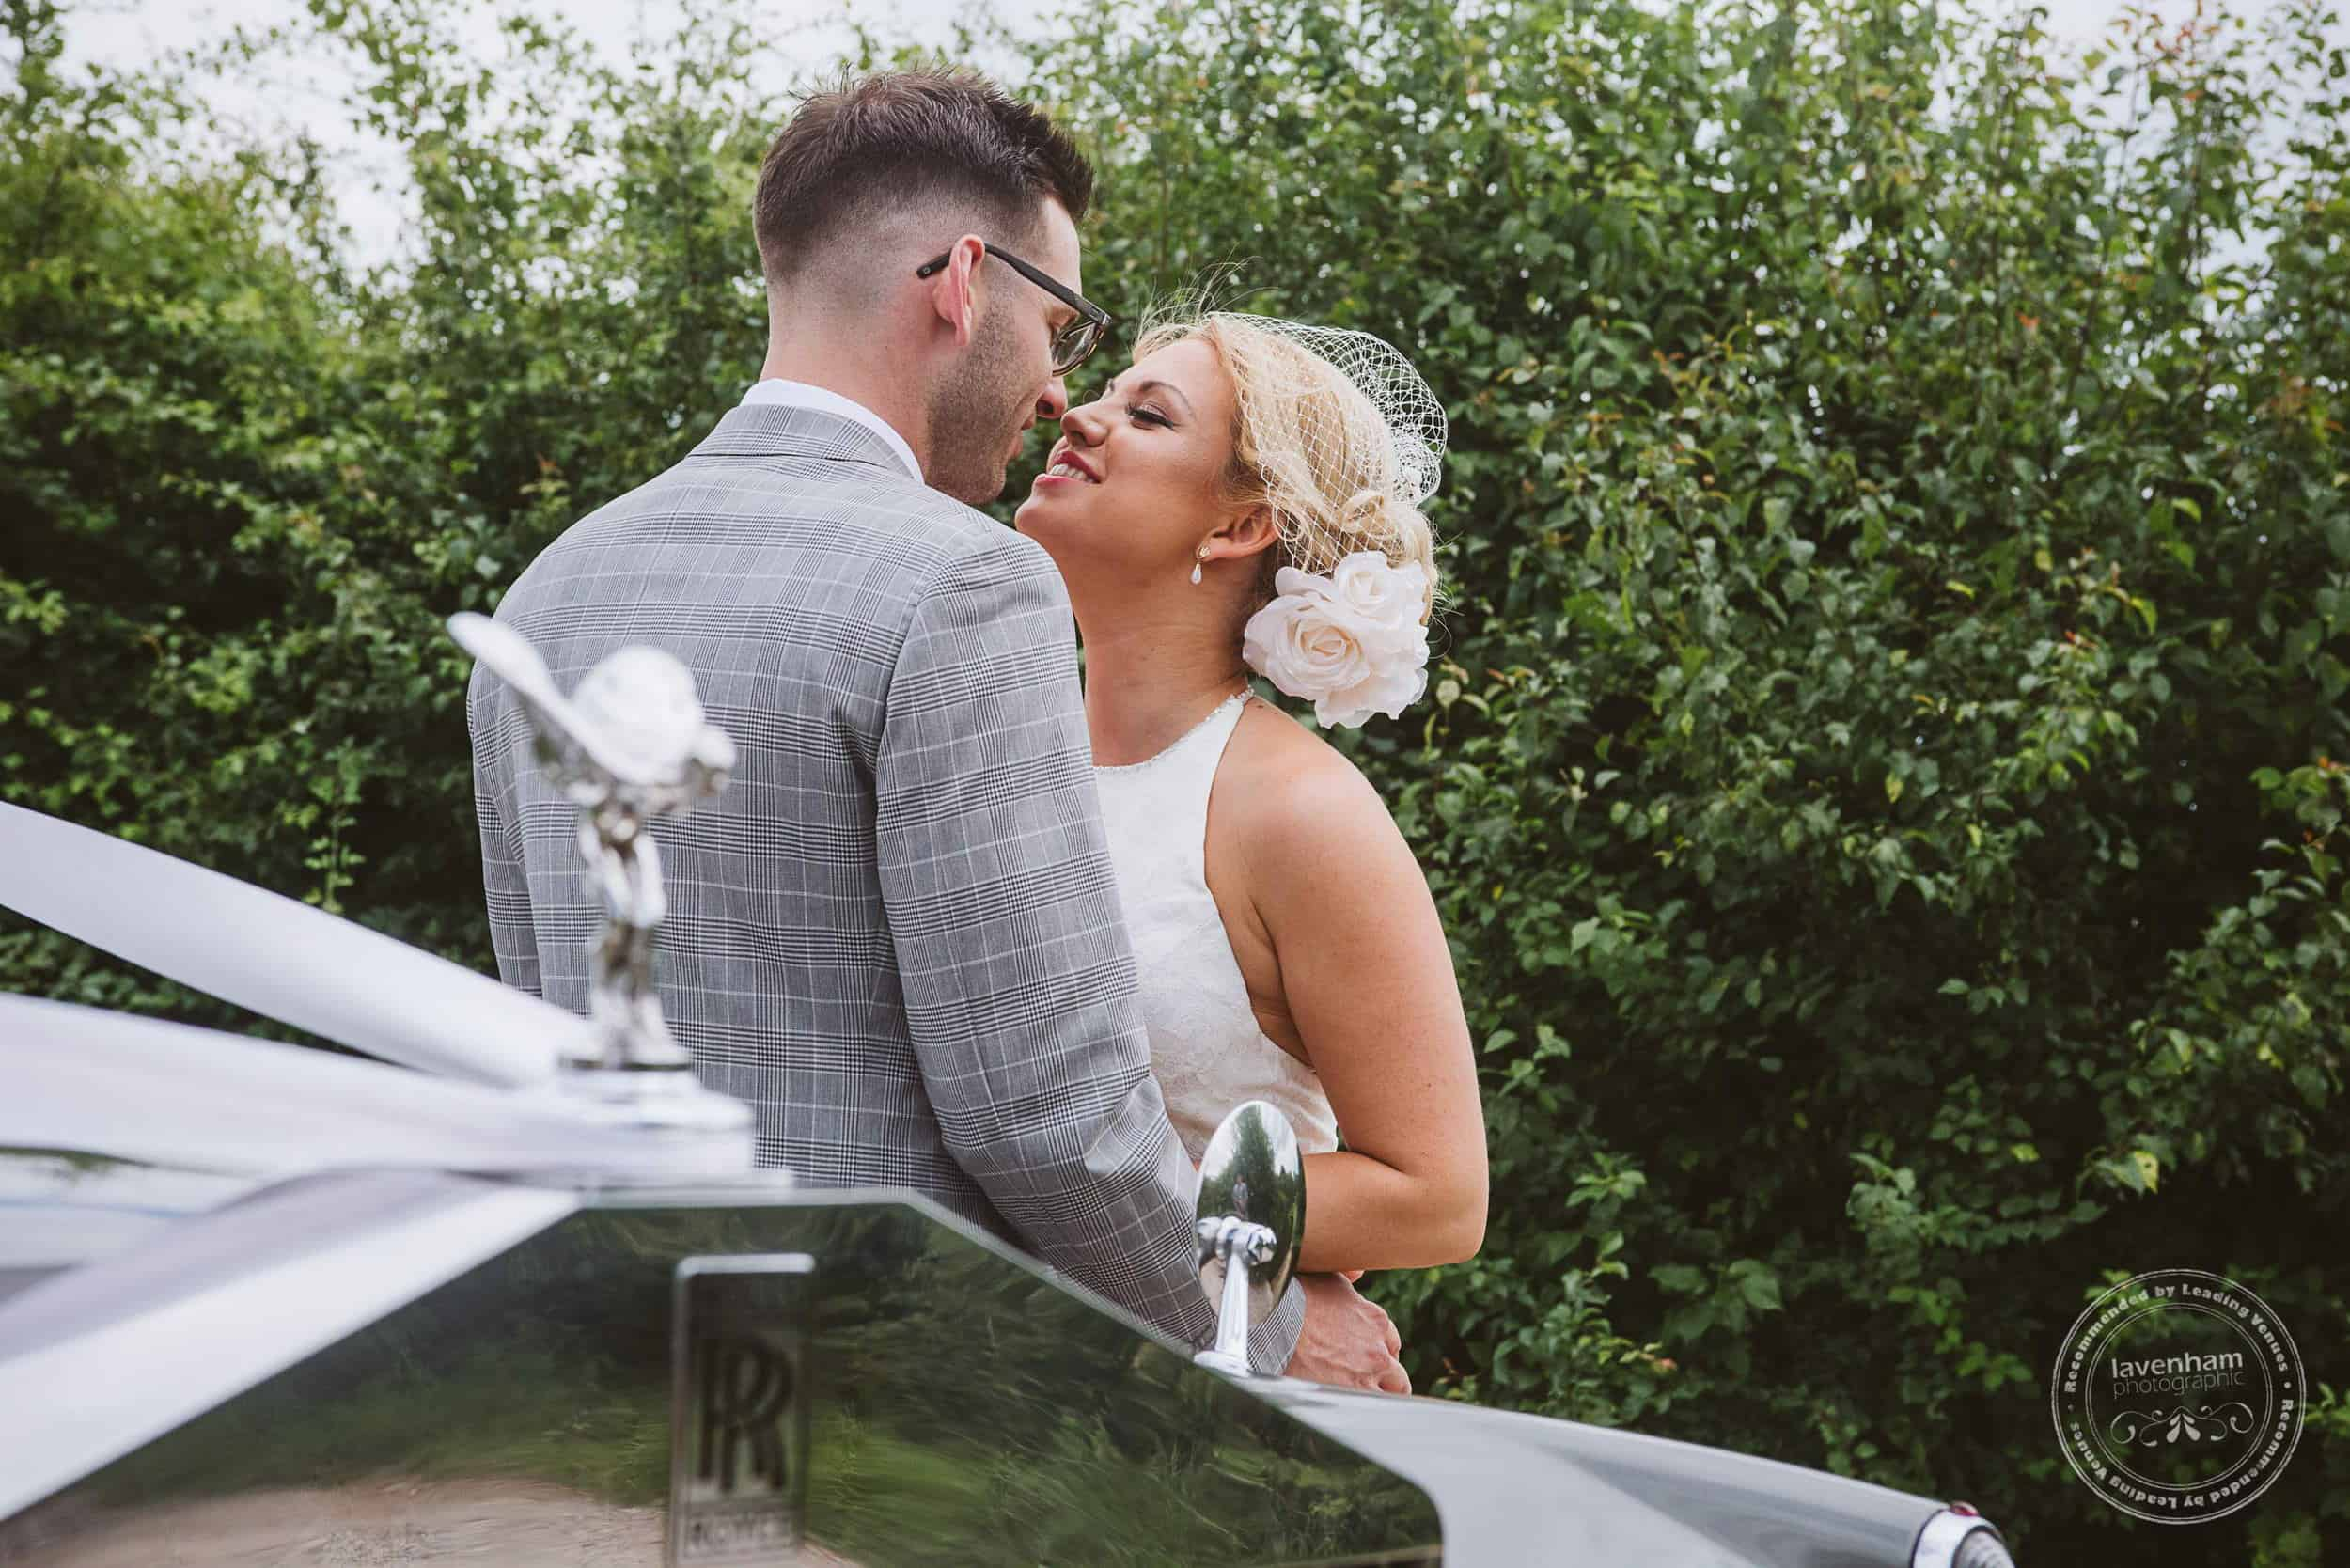 140717 Layer Marney Wedding Photography by Lavenham Photographic 054